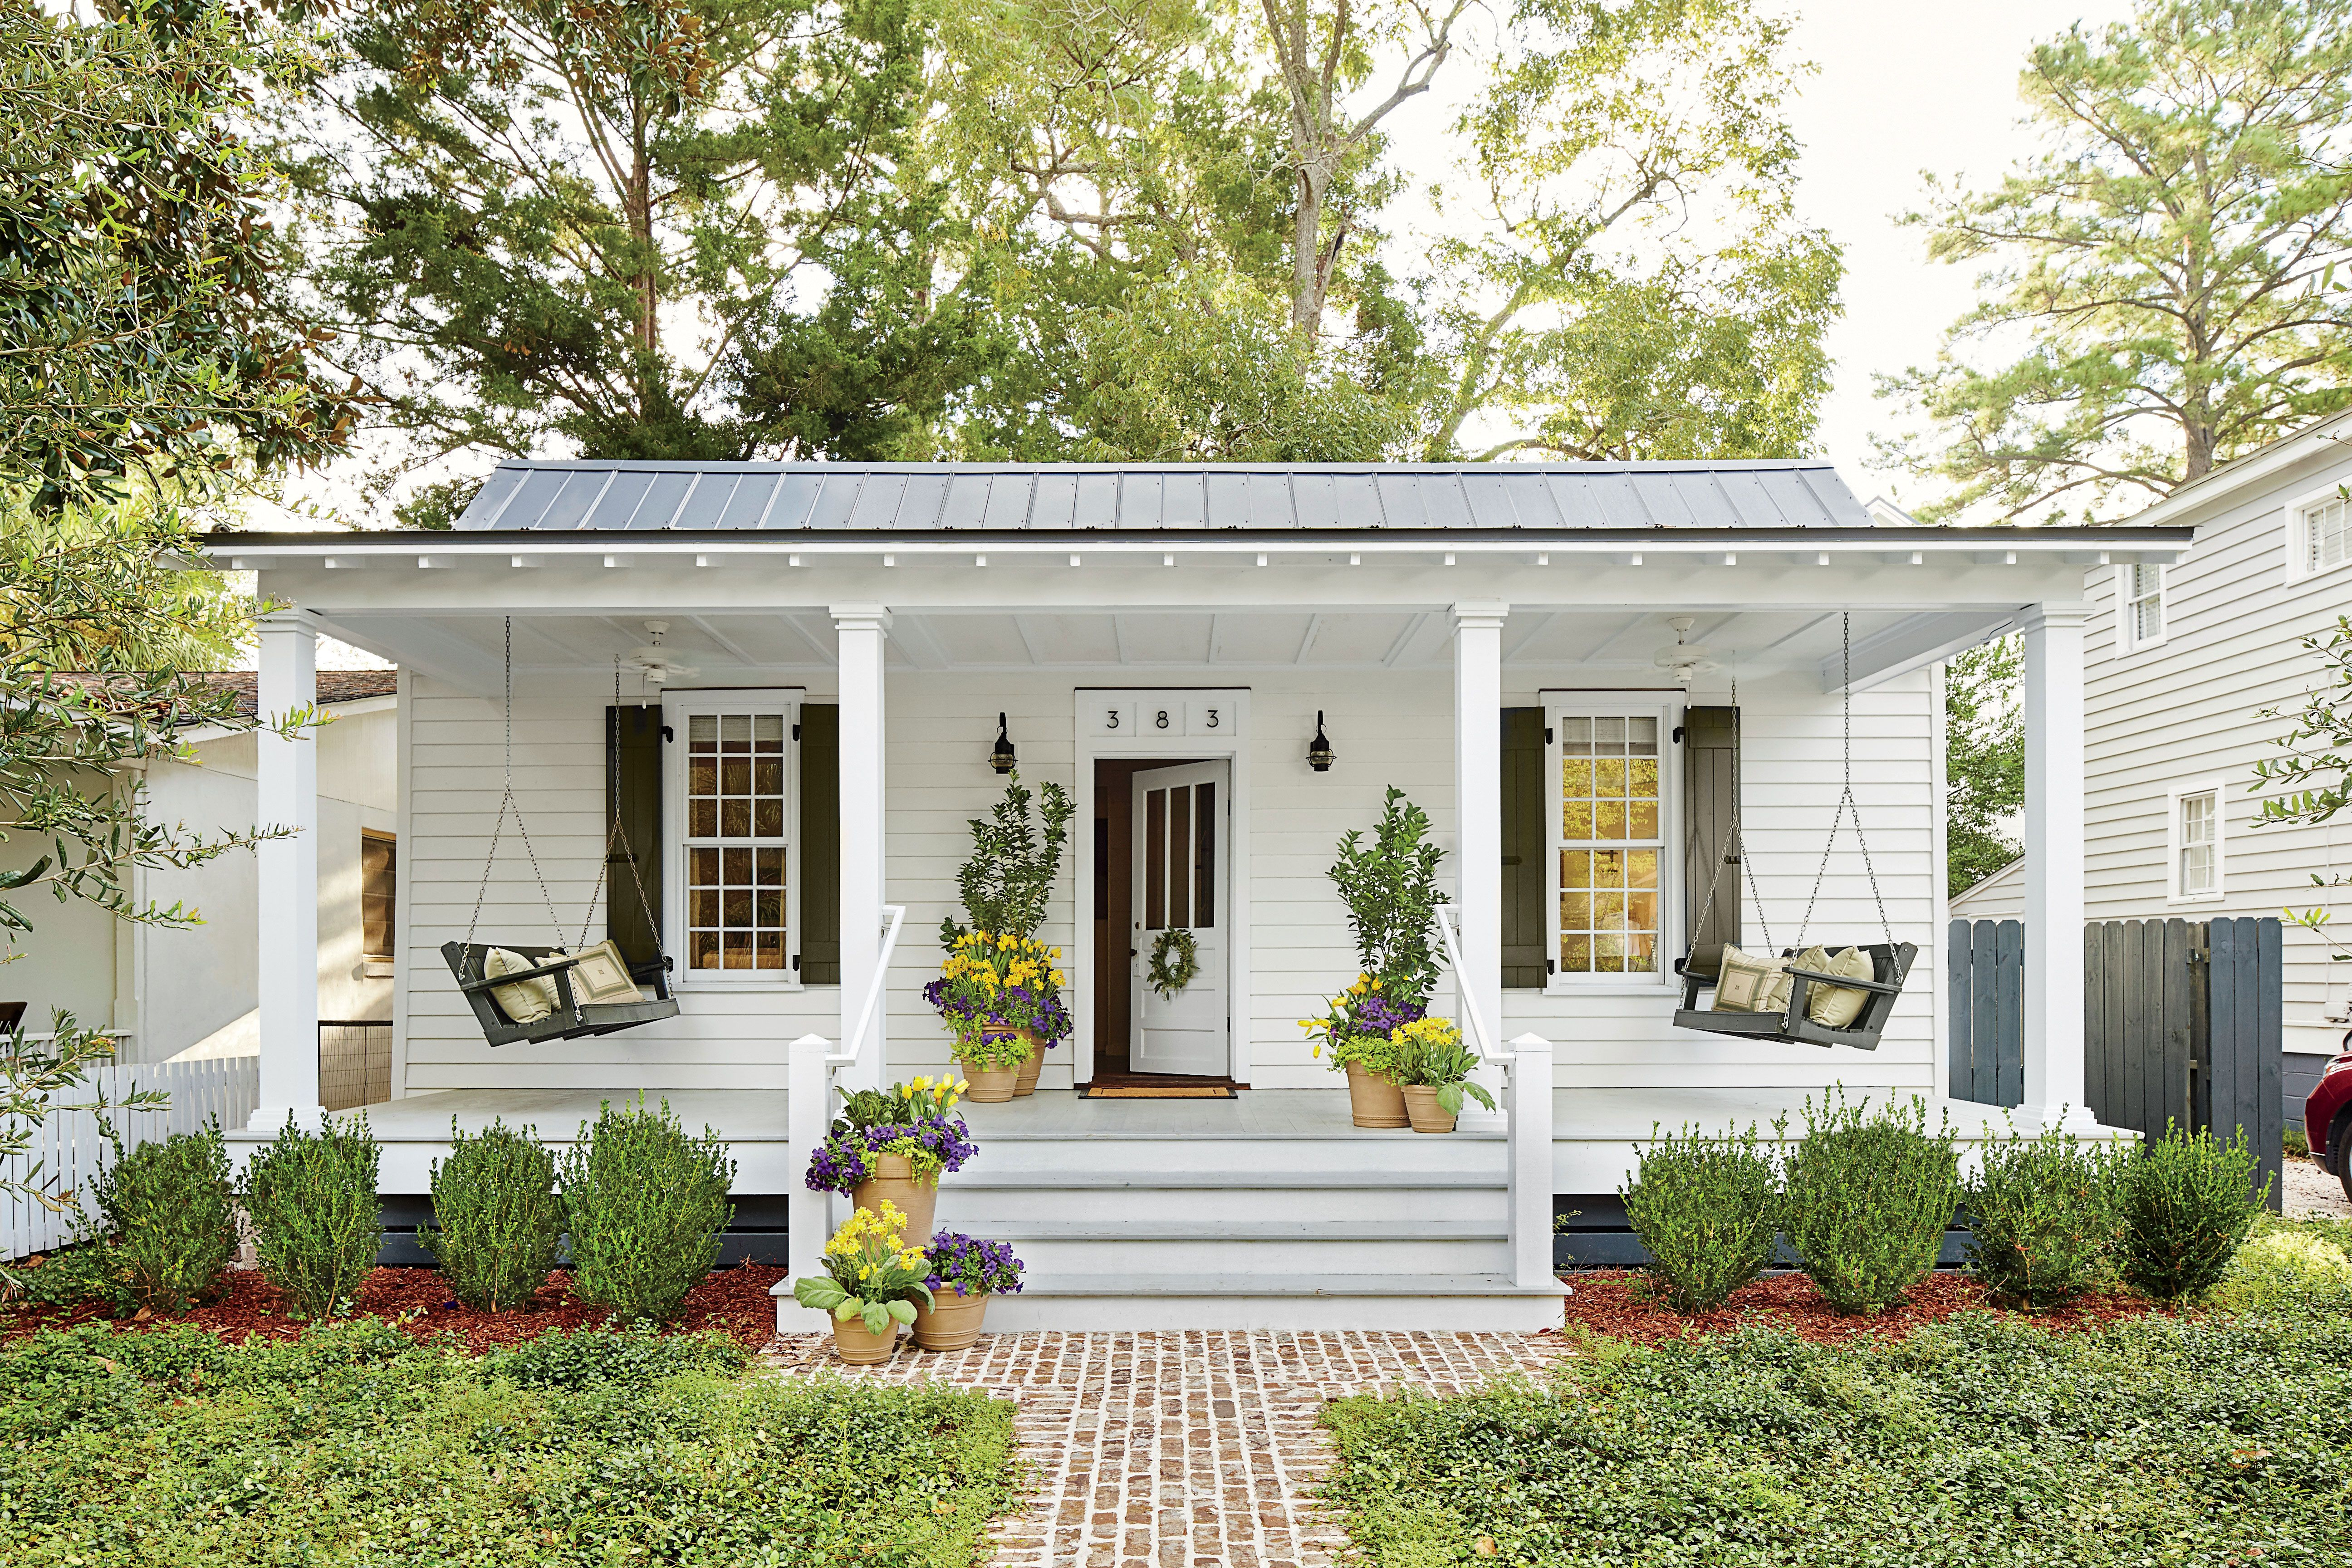 White porch with two swings front porch in house home cottage